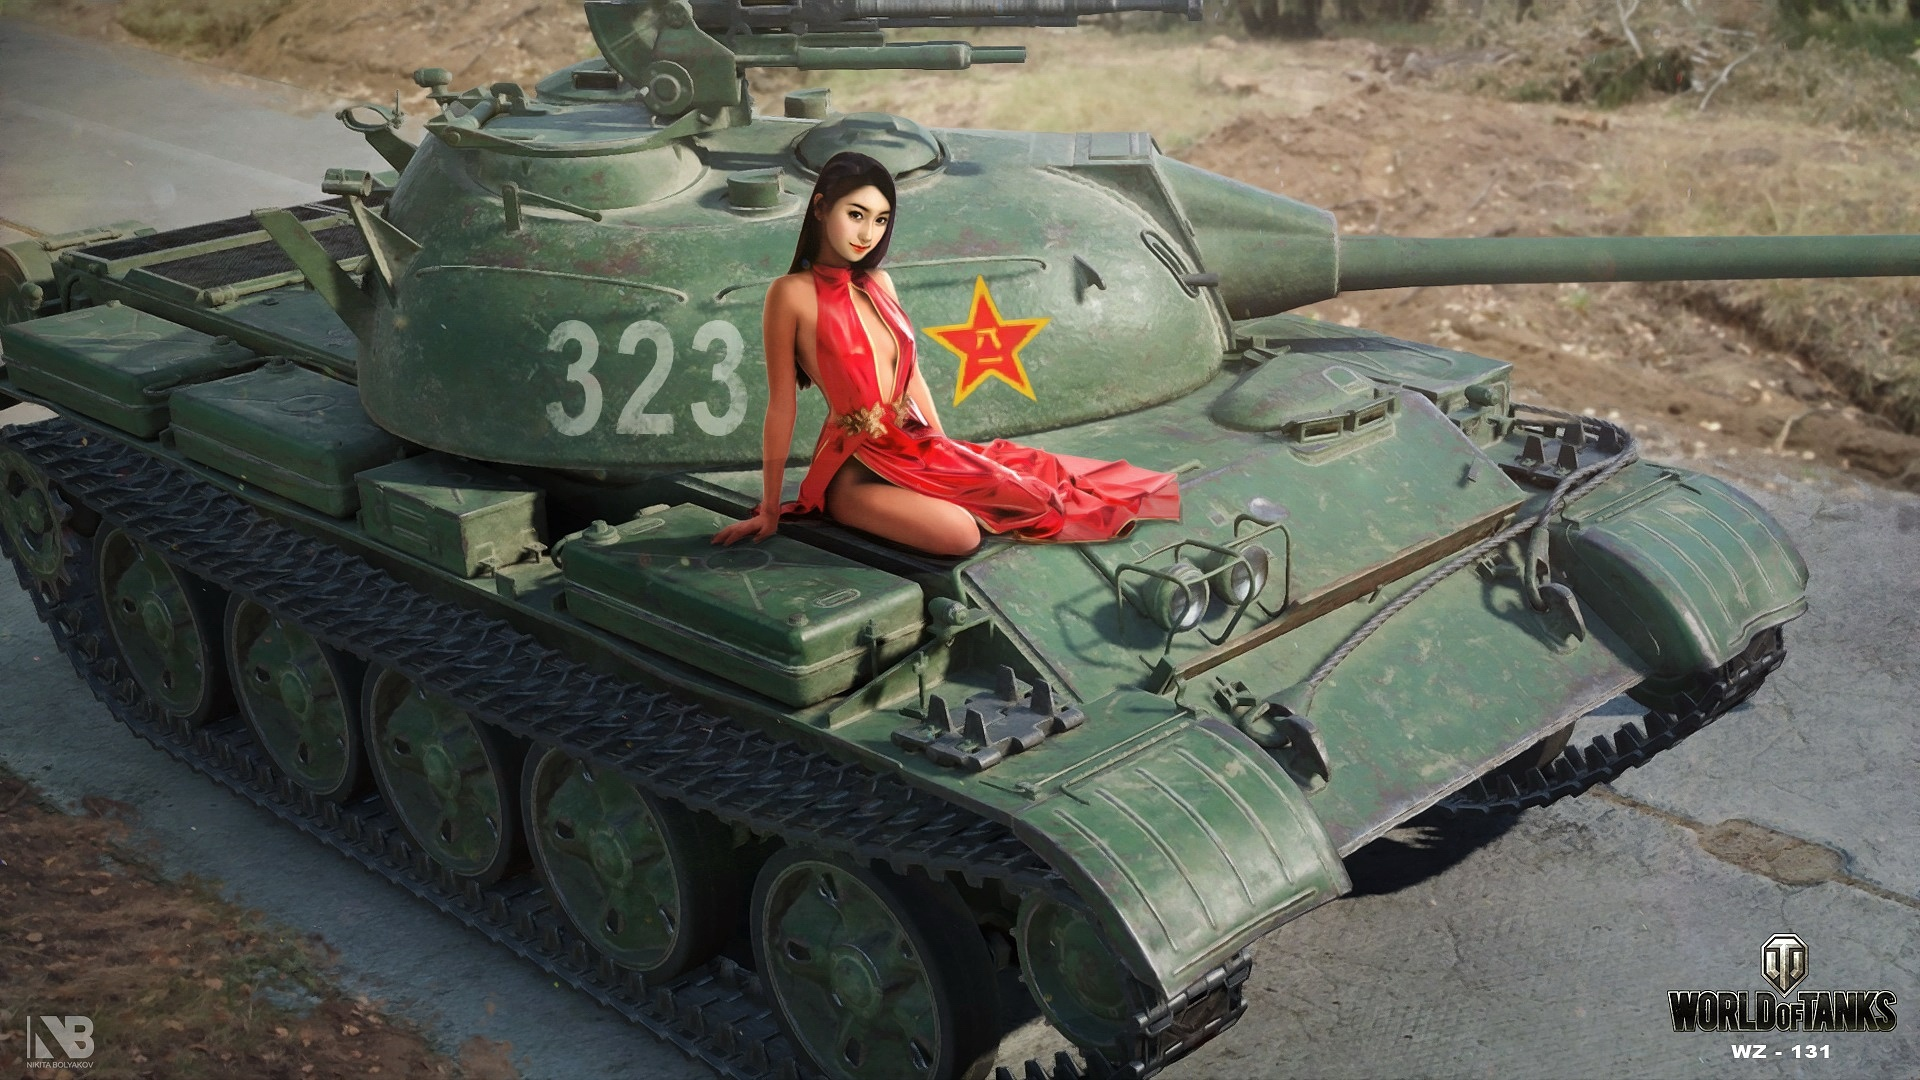 Wallpaper World Of Tanks, Chinese Girl, Sexy 1920X1080 -5265